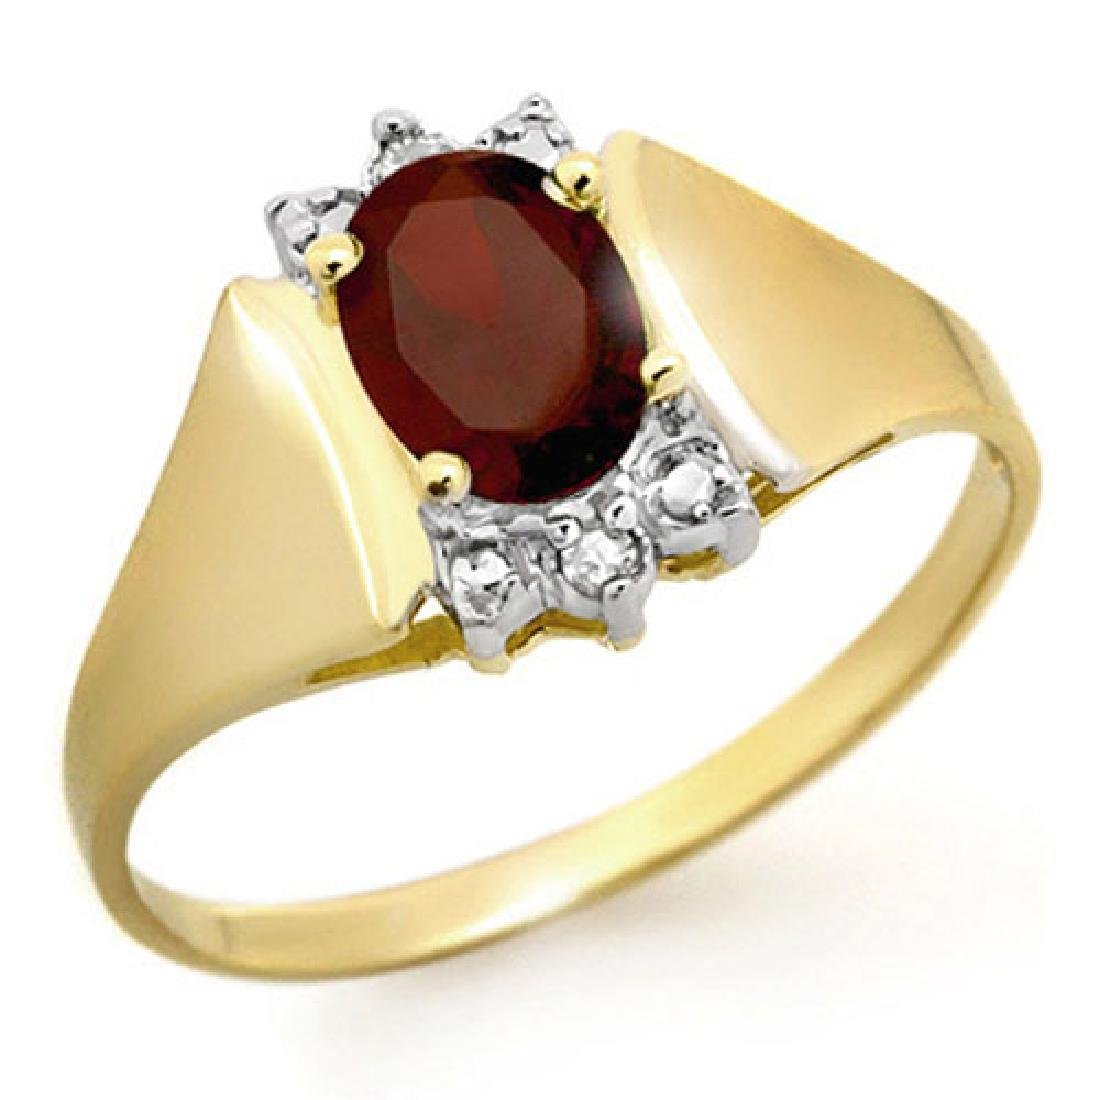 1.03 CTW Garnet & Diamond Ring 10K Yellow Gold